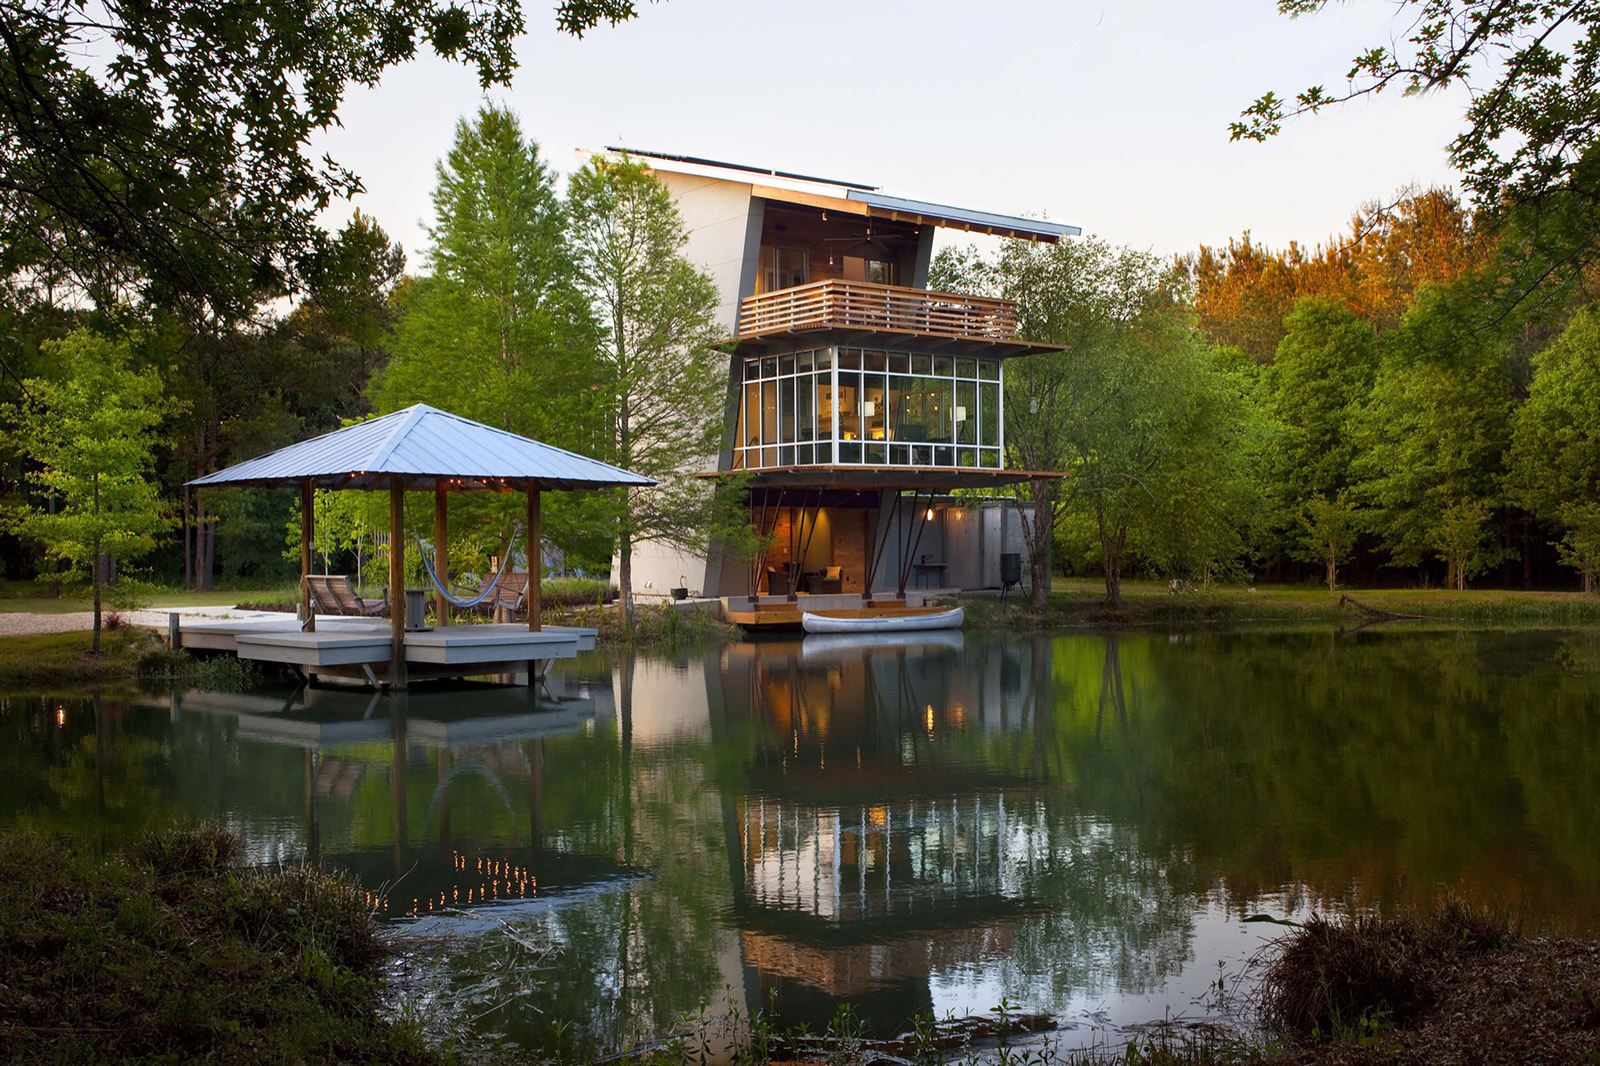 tranquil modern retreat on the edge of a pond